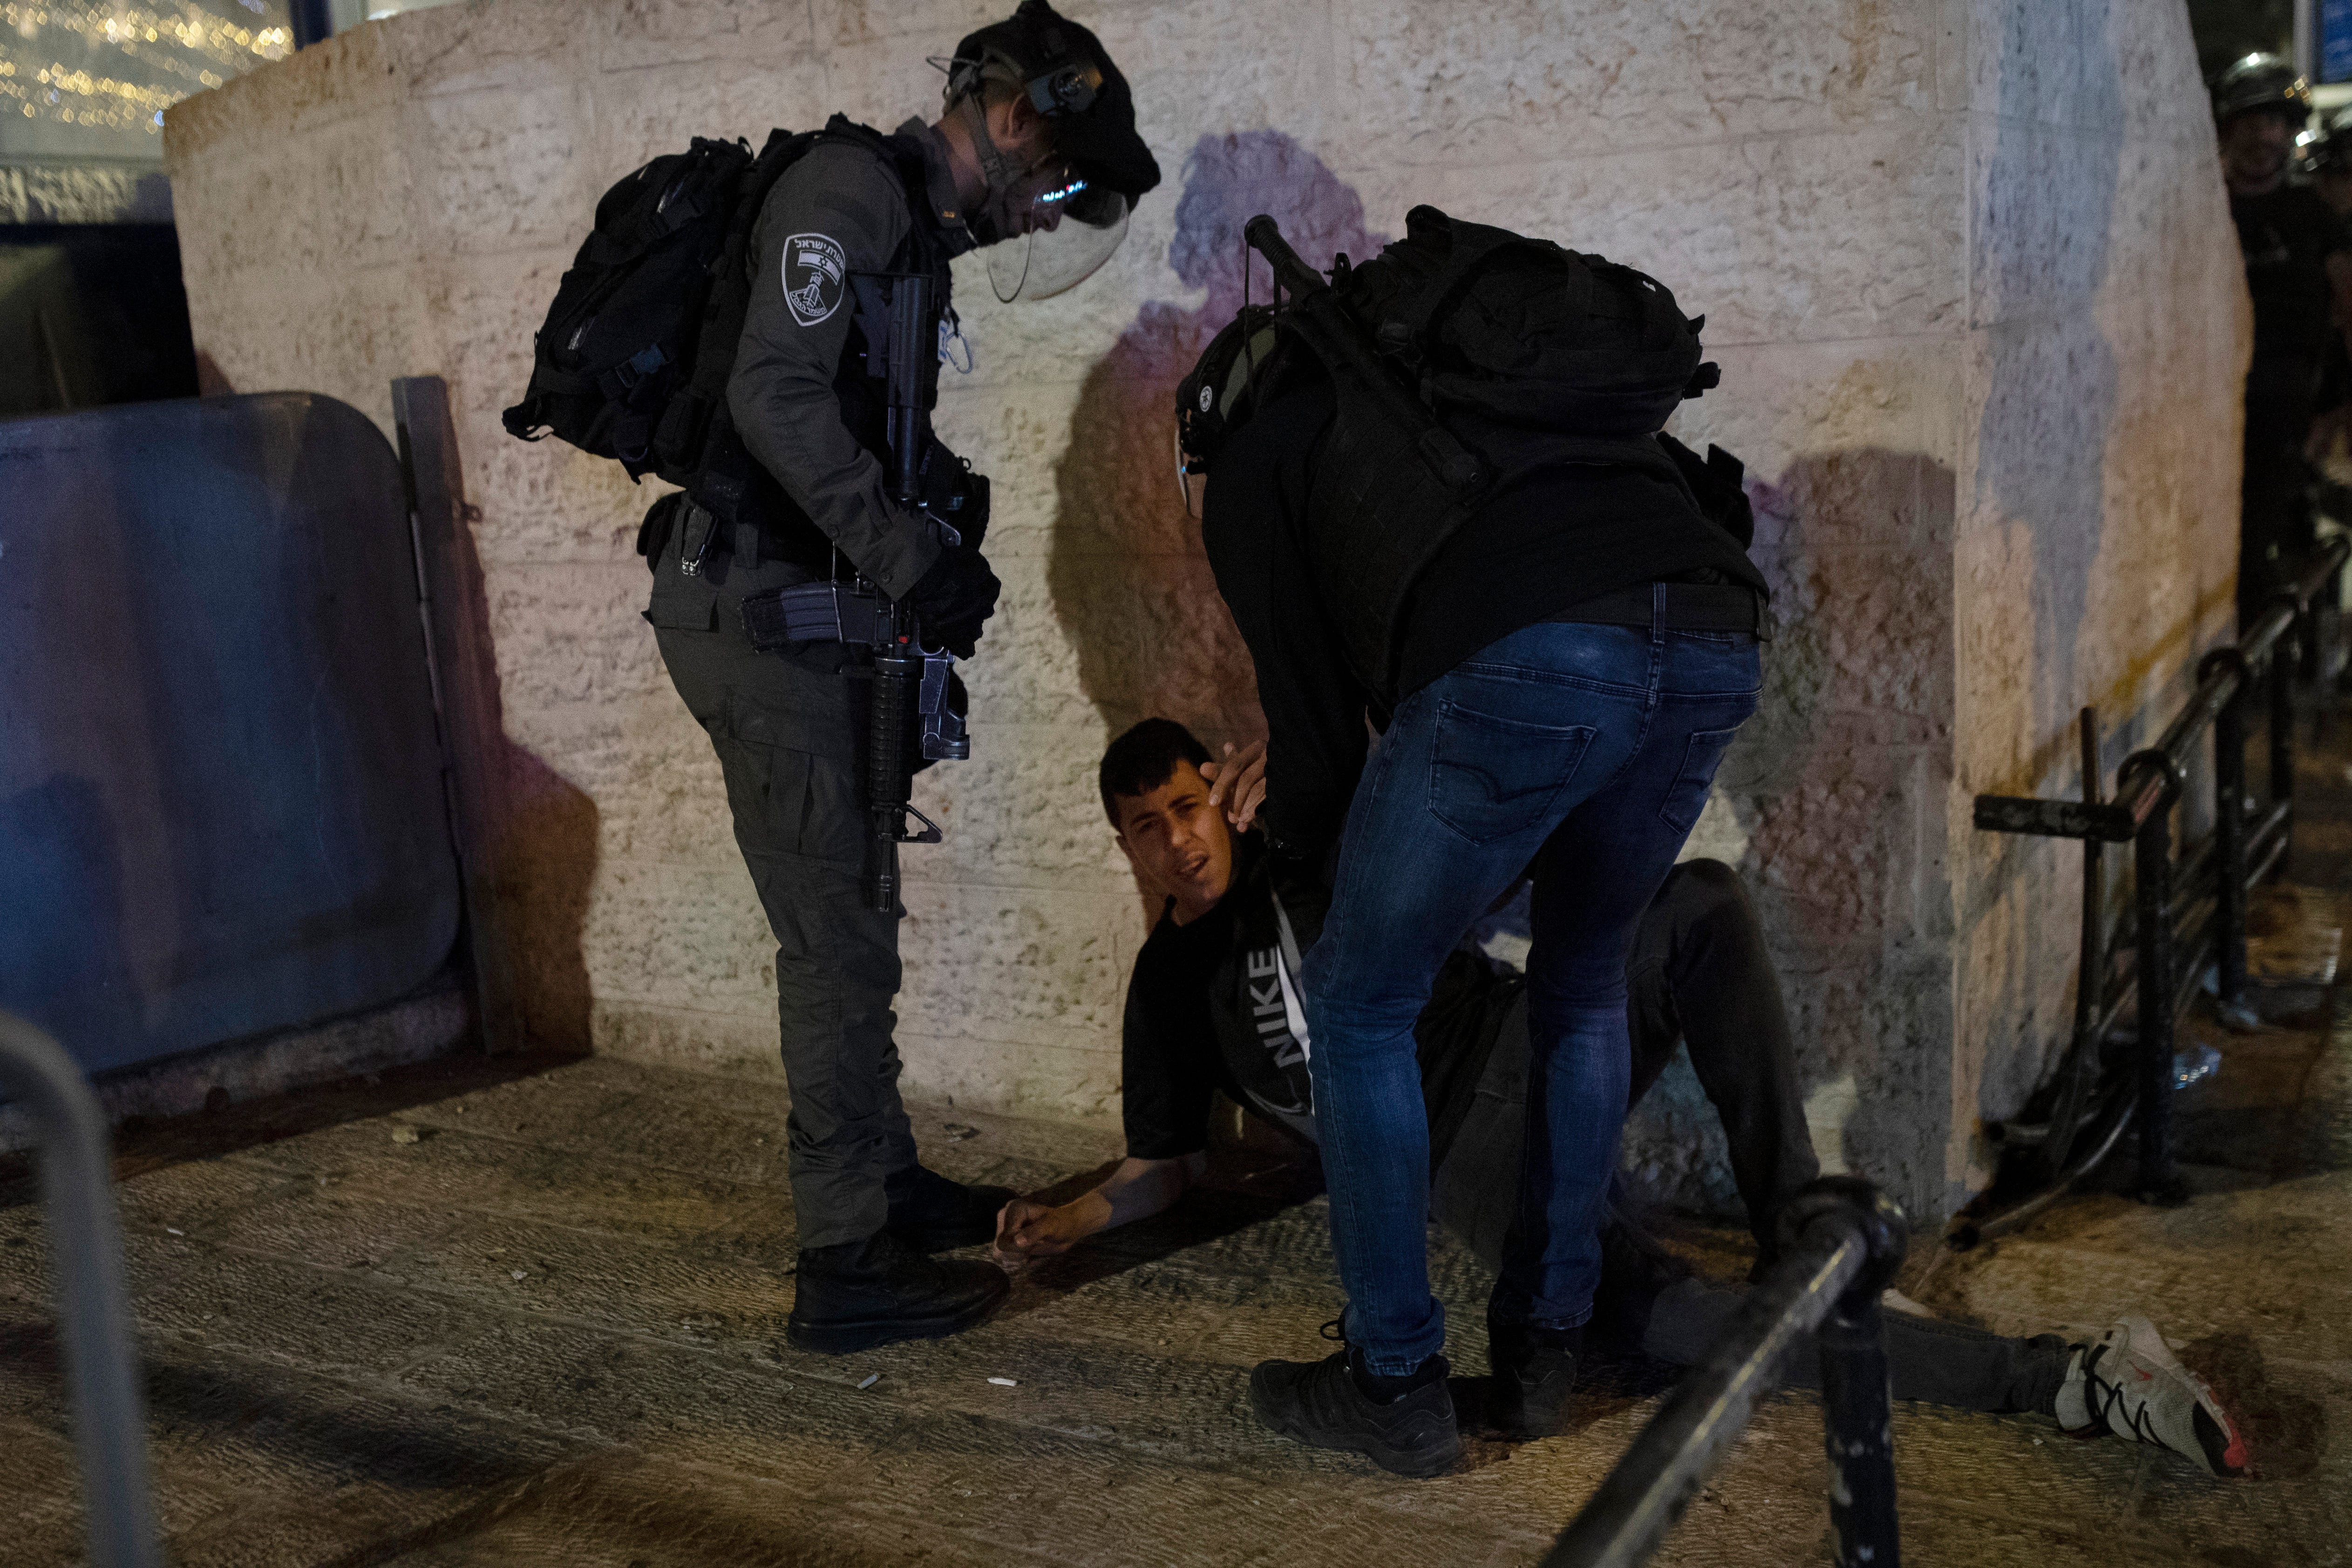 Medics: 200 Palestinians hurt in Al-Aqsa clashes with police 1